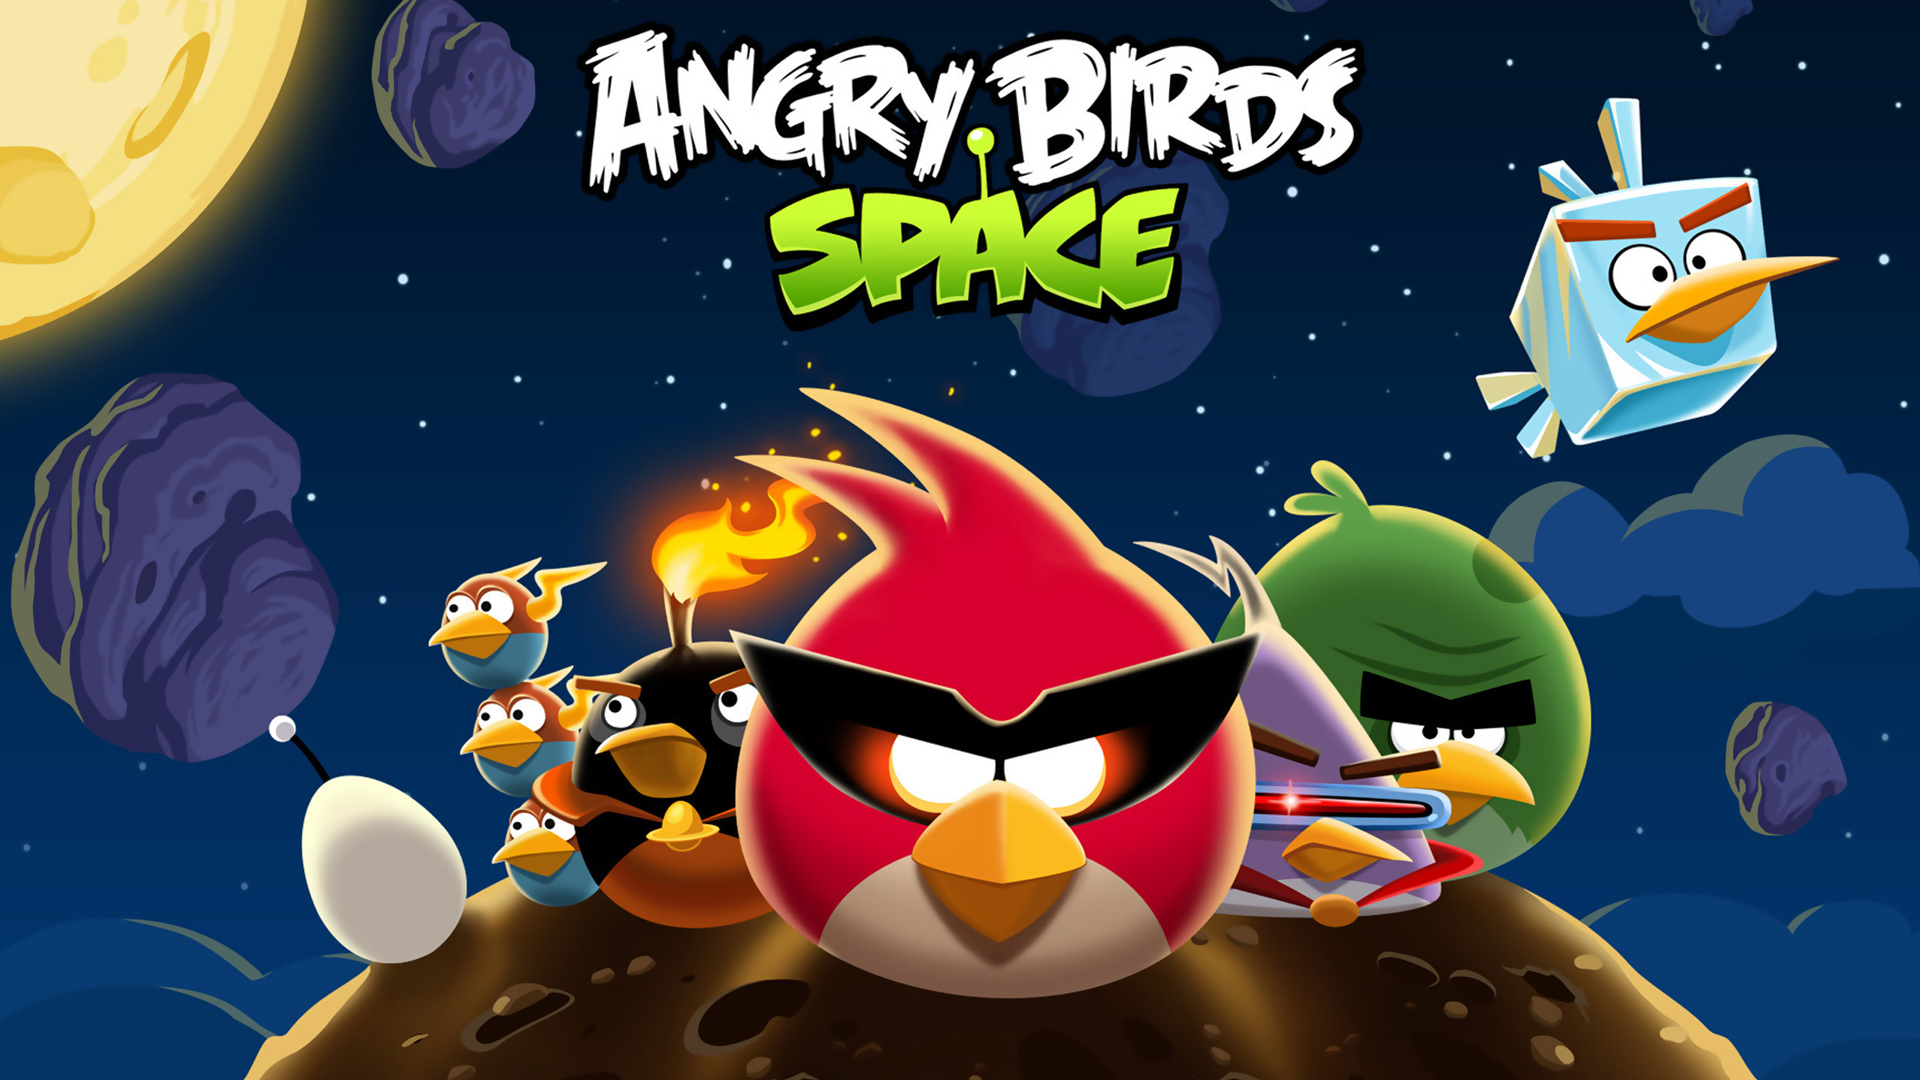 angry birds space hd wallpaper - hd wallpapers